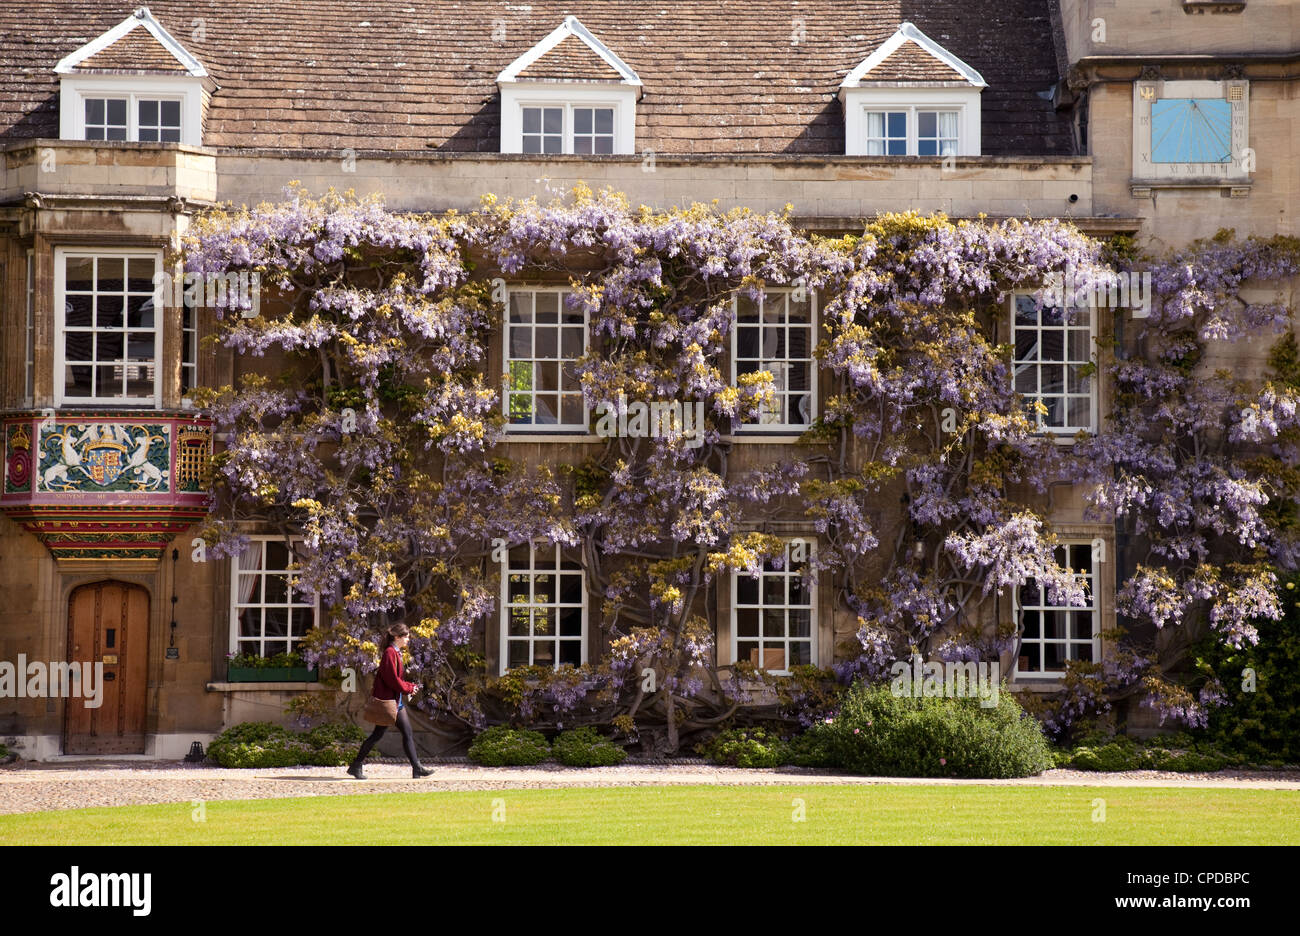 A student walks past the wisteria in spring, Christs College Cambridge UK - Stock Image